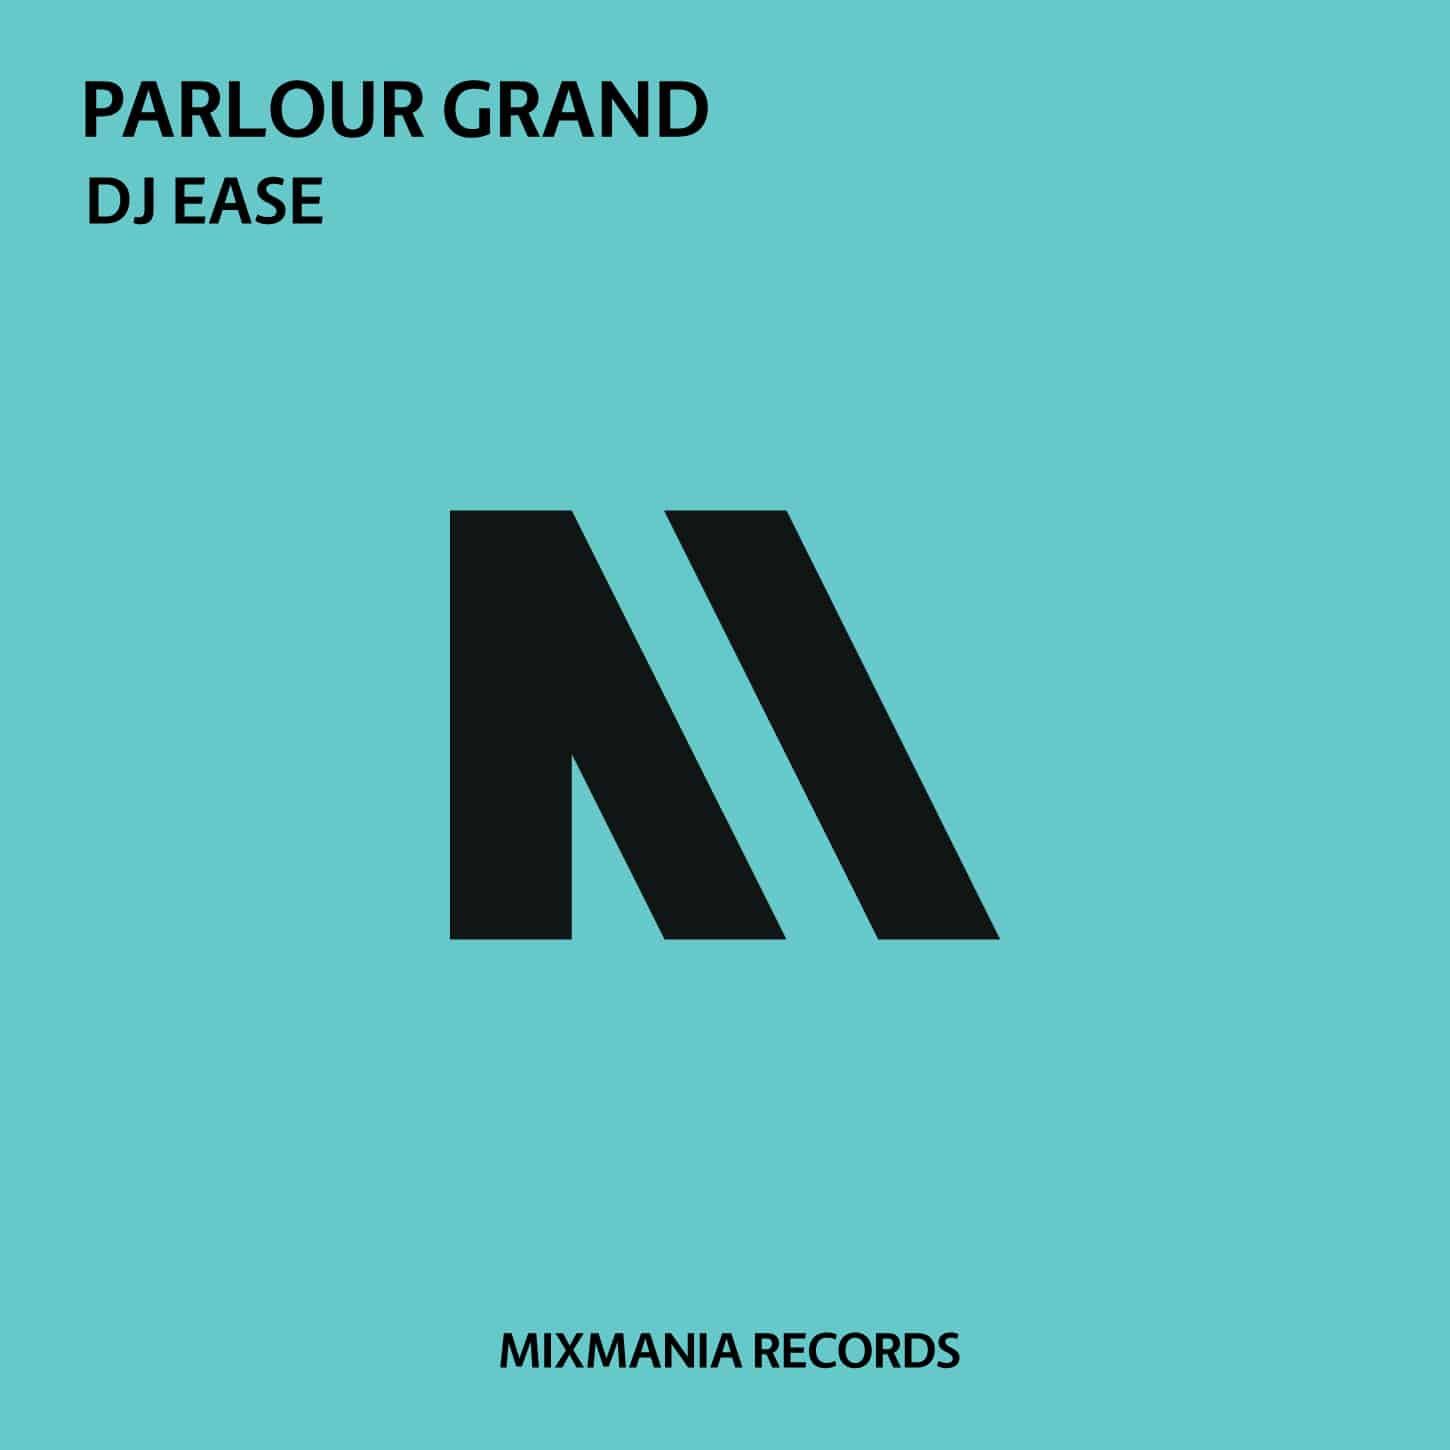 Parlour Grand (Original Mix) By Dj Ease